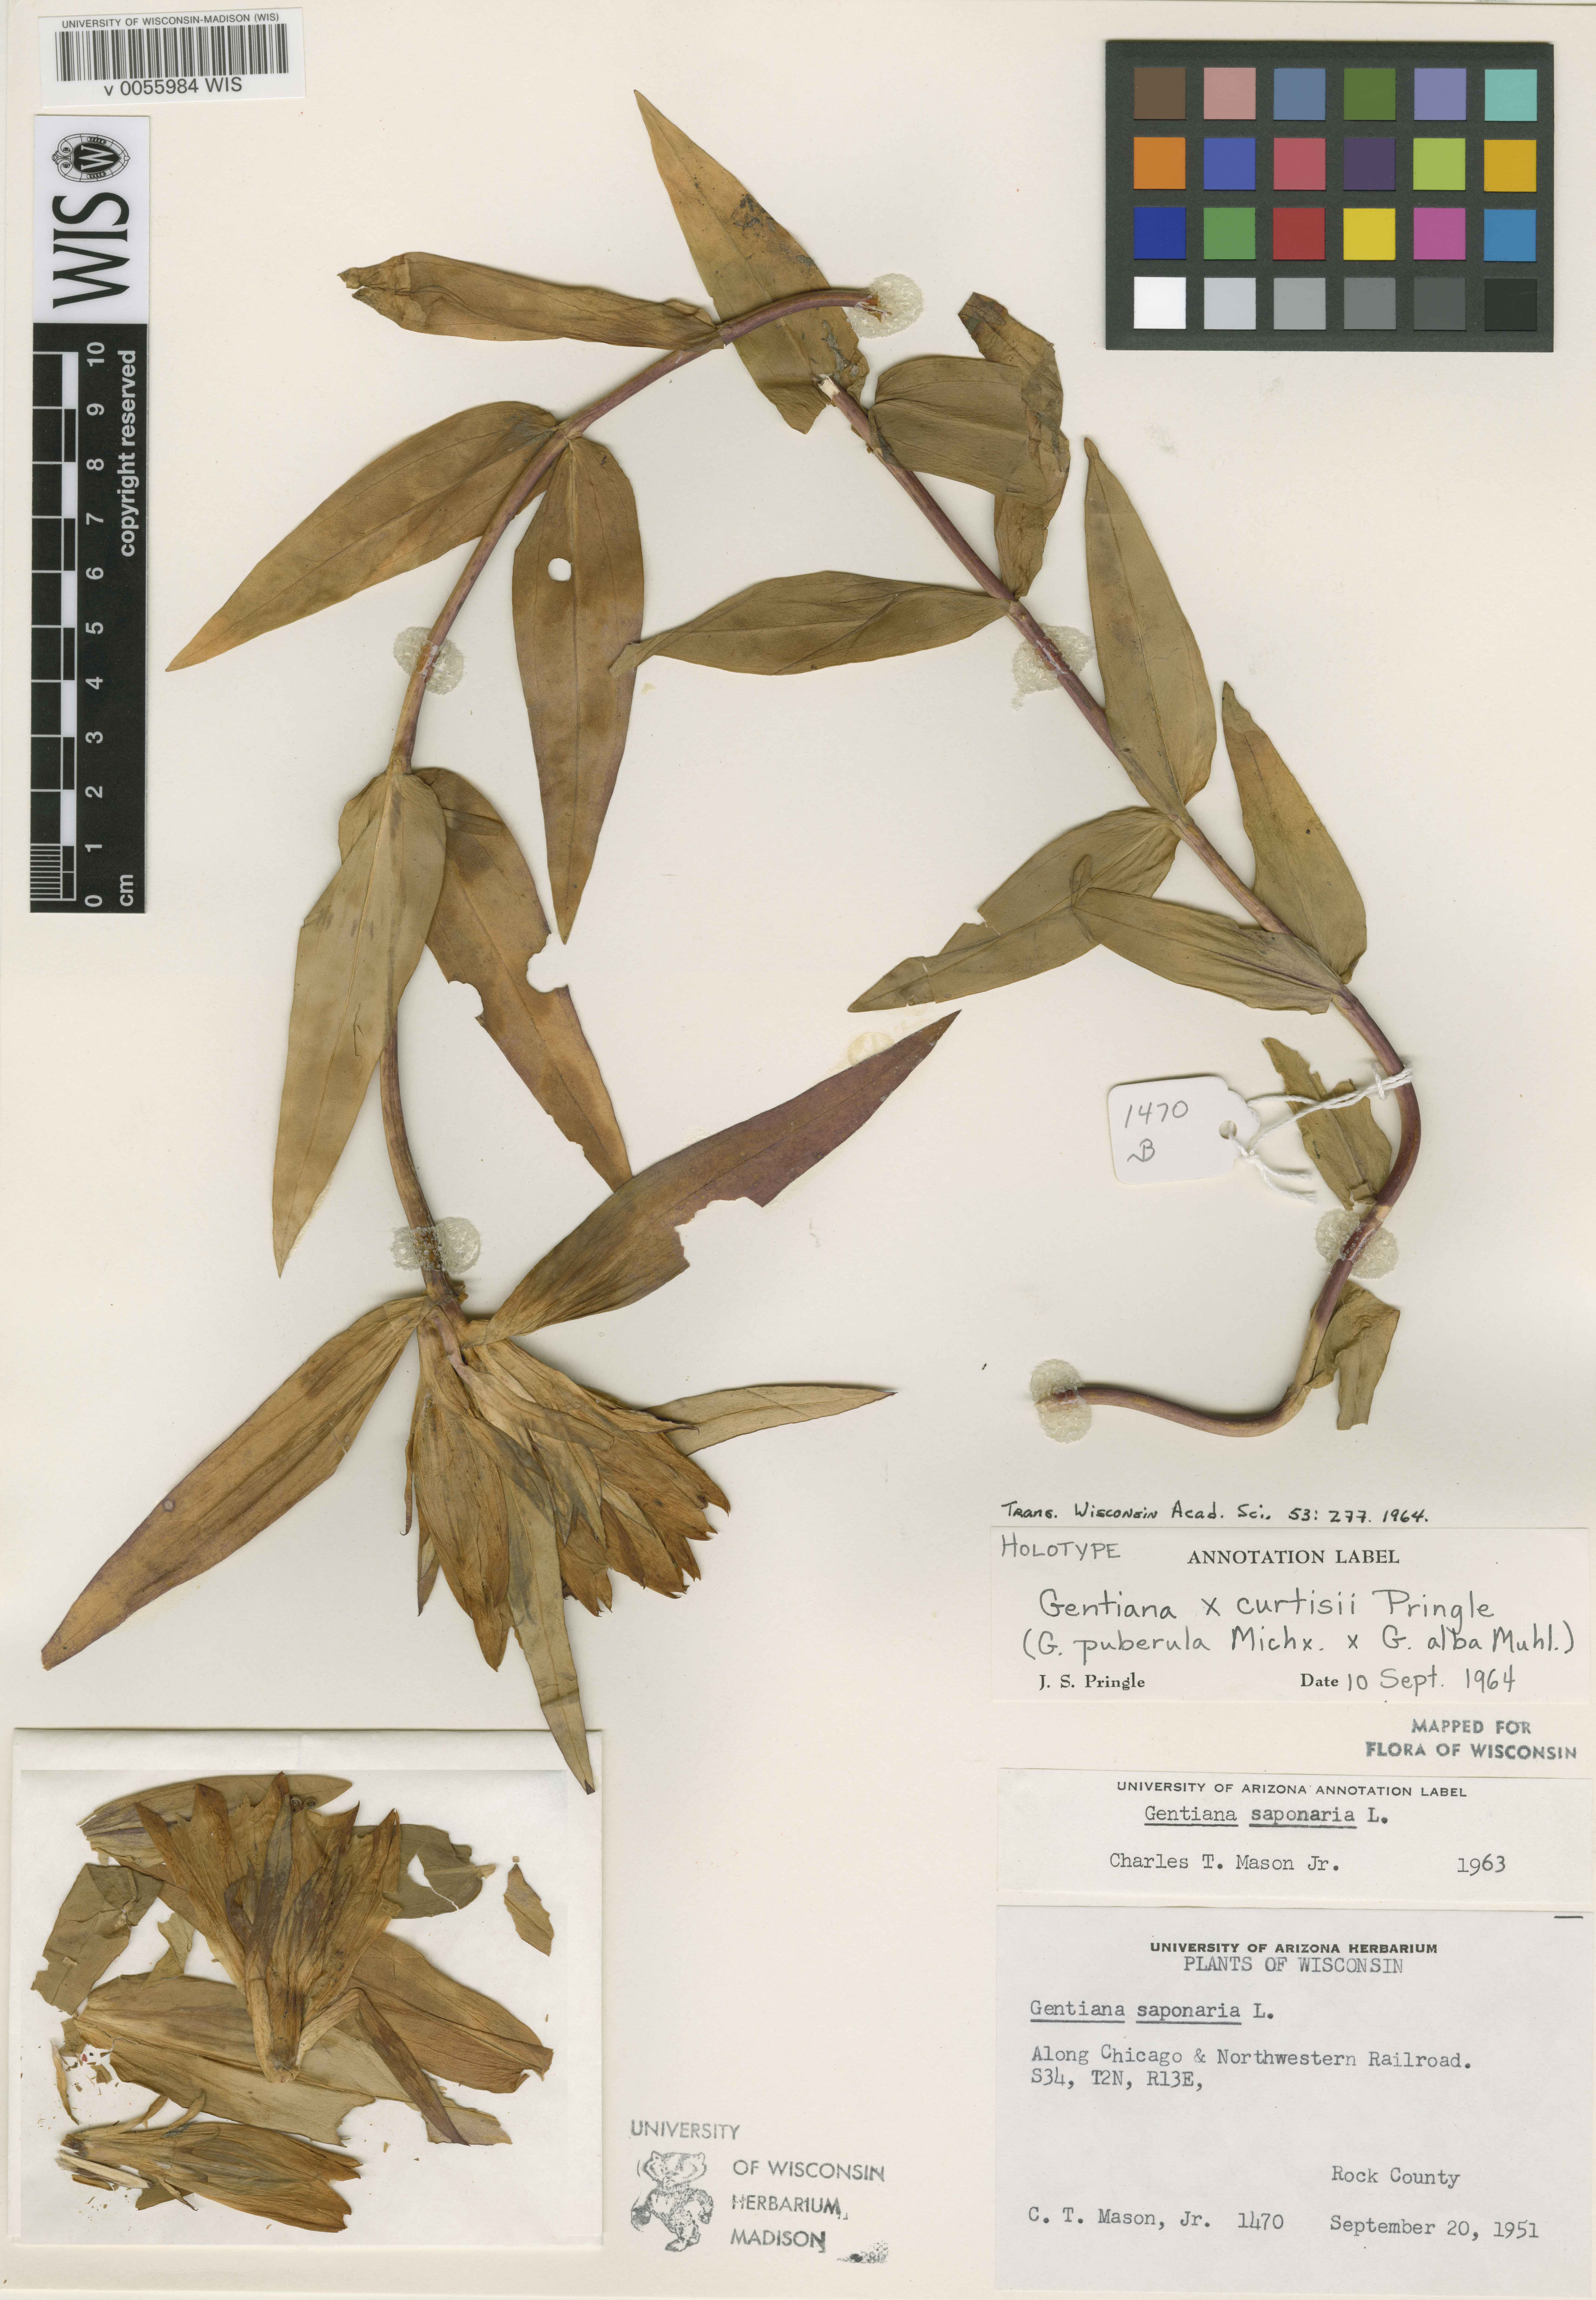 Image of Gentiana x curtisii